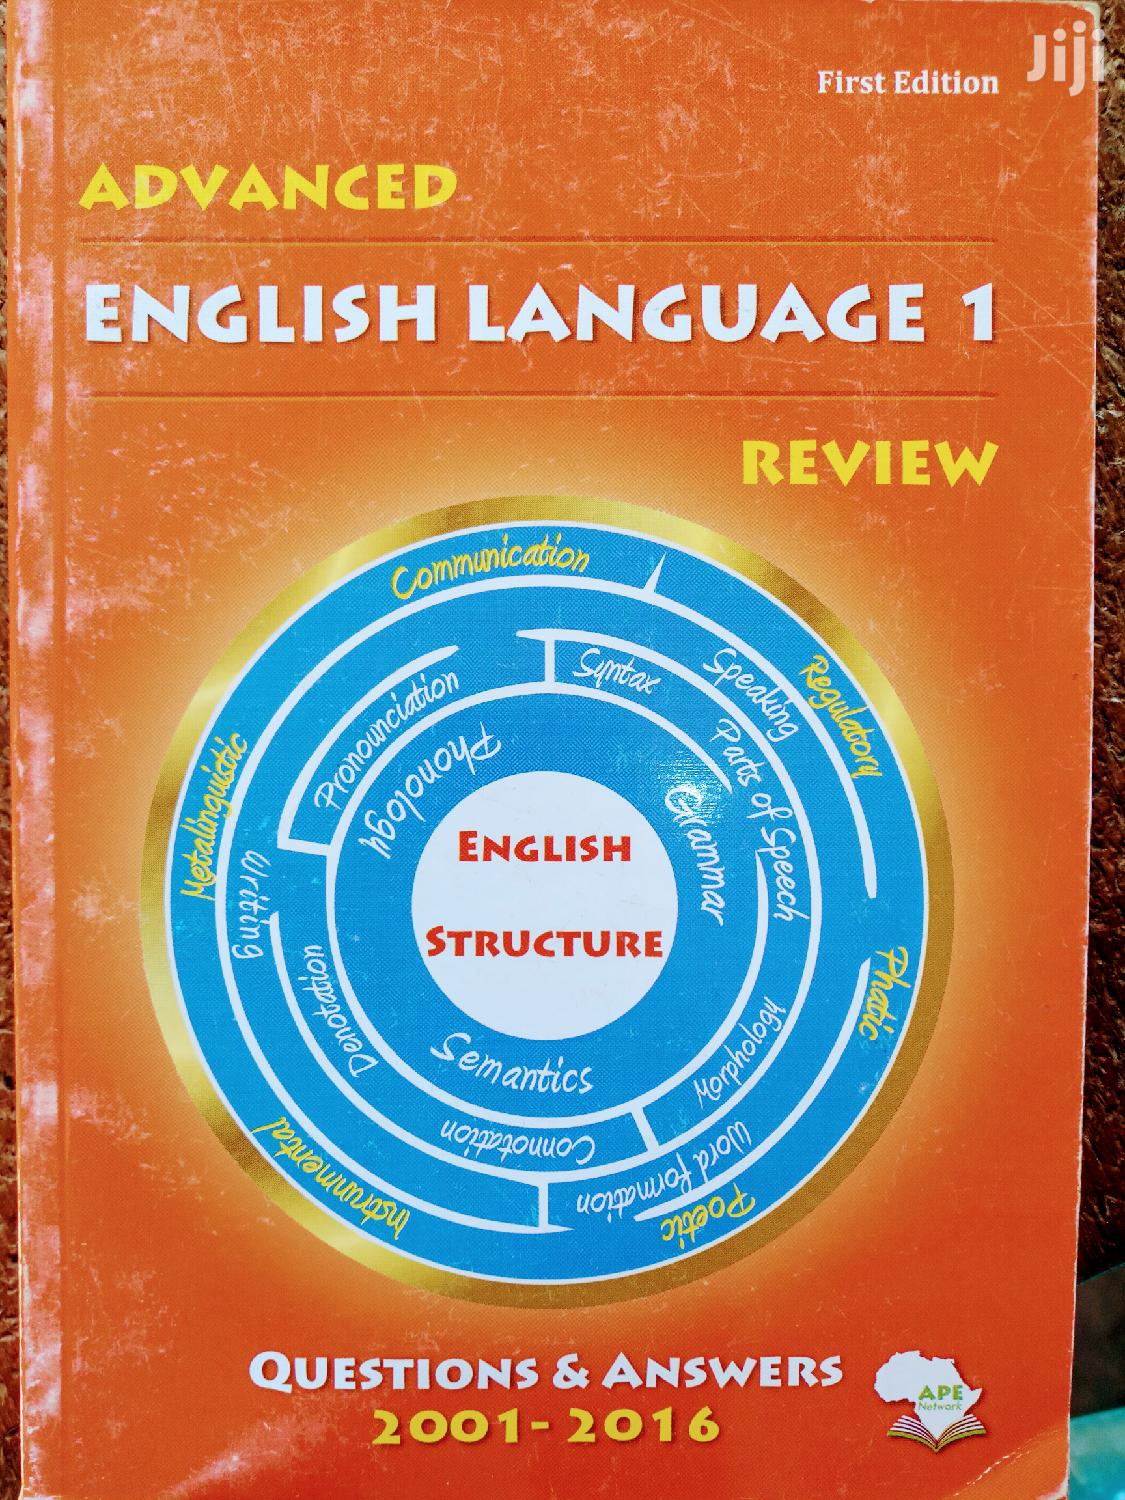 Archive: Advanced Level Language Review Ya Necta